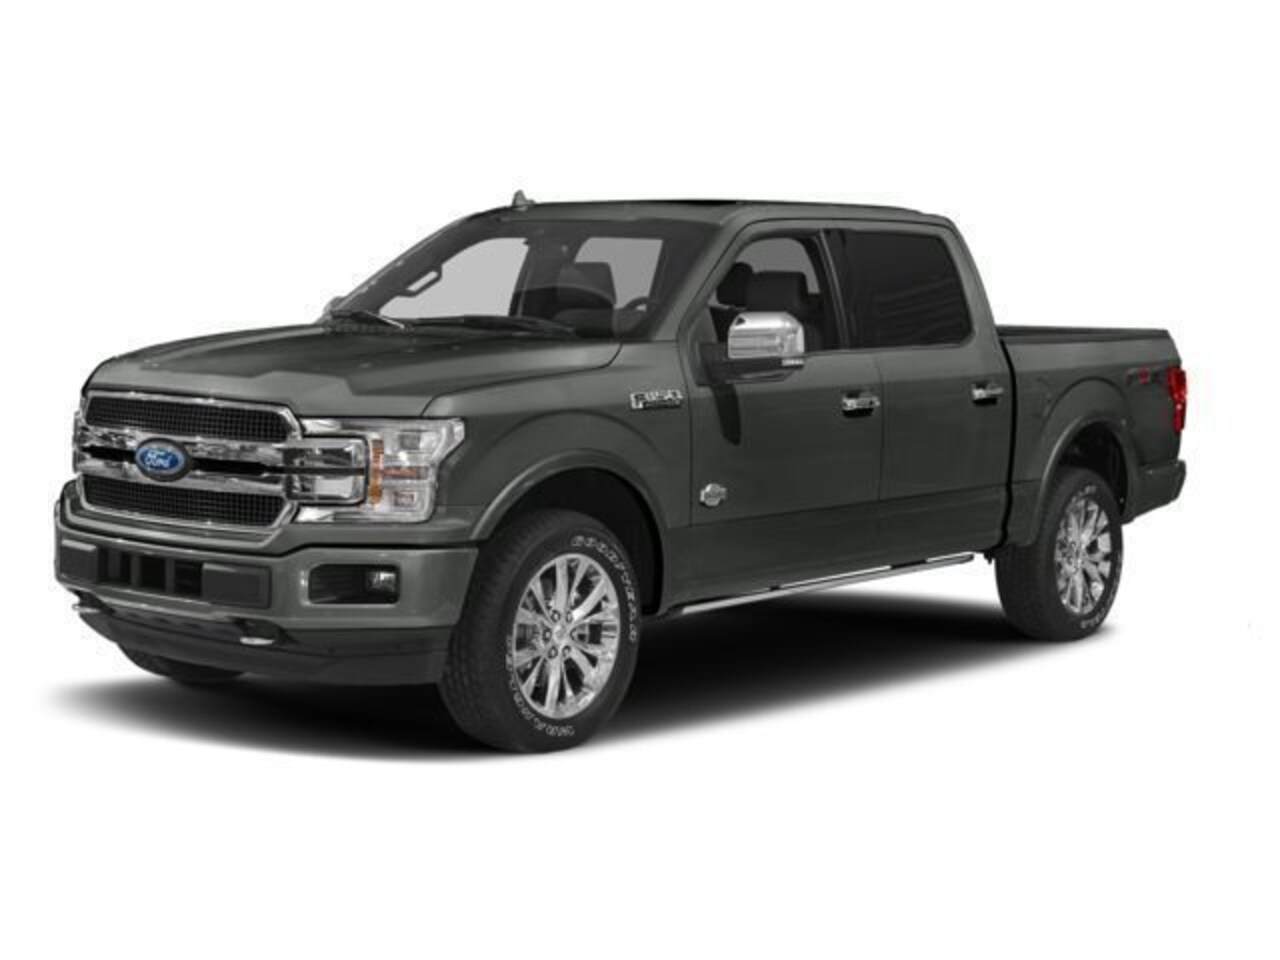 2018 Ford F-150 XLT 3.5L ECOBOOST 10 SPEED Crew Cab Short Bed Truck